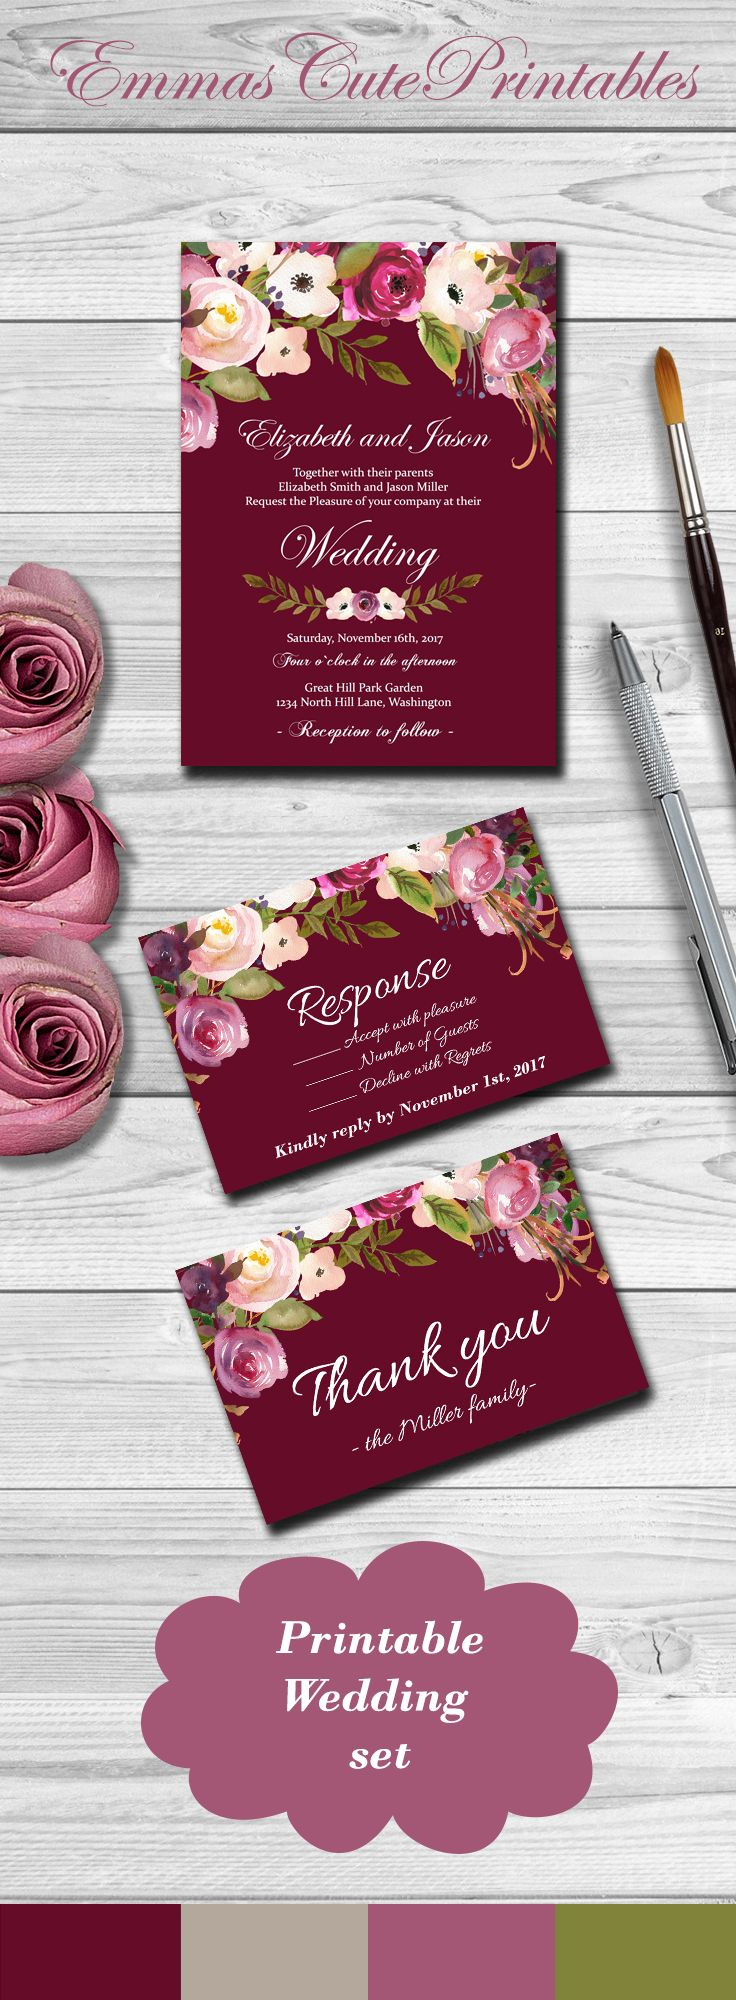 Marsala Wedding Invitation, Watercolor Floral wedding invitation set ...